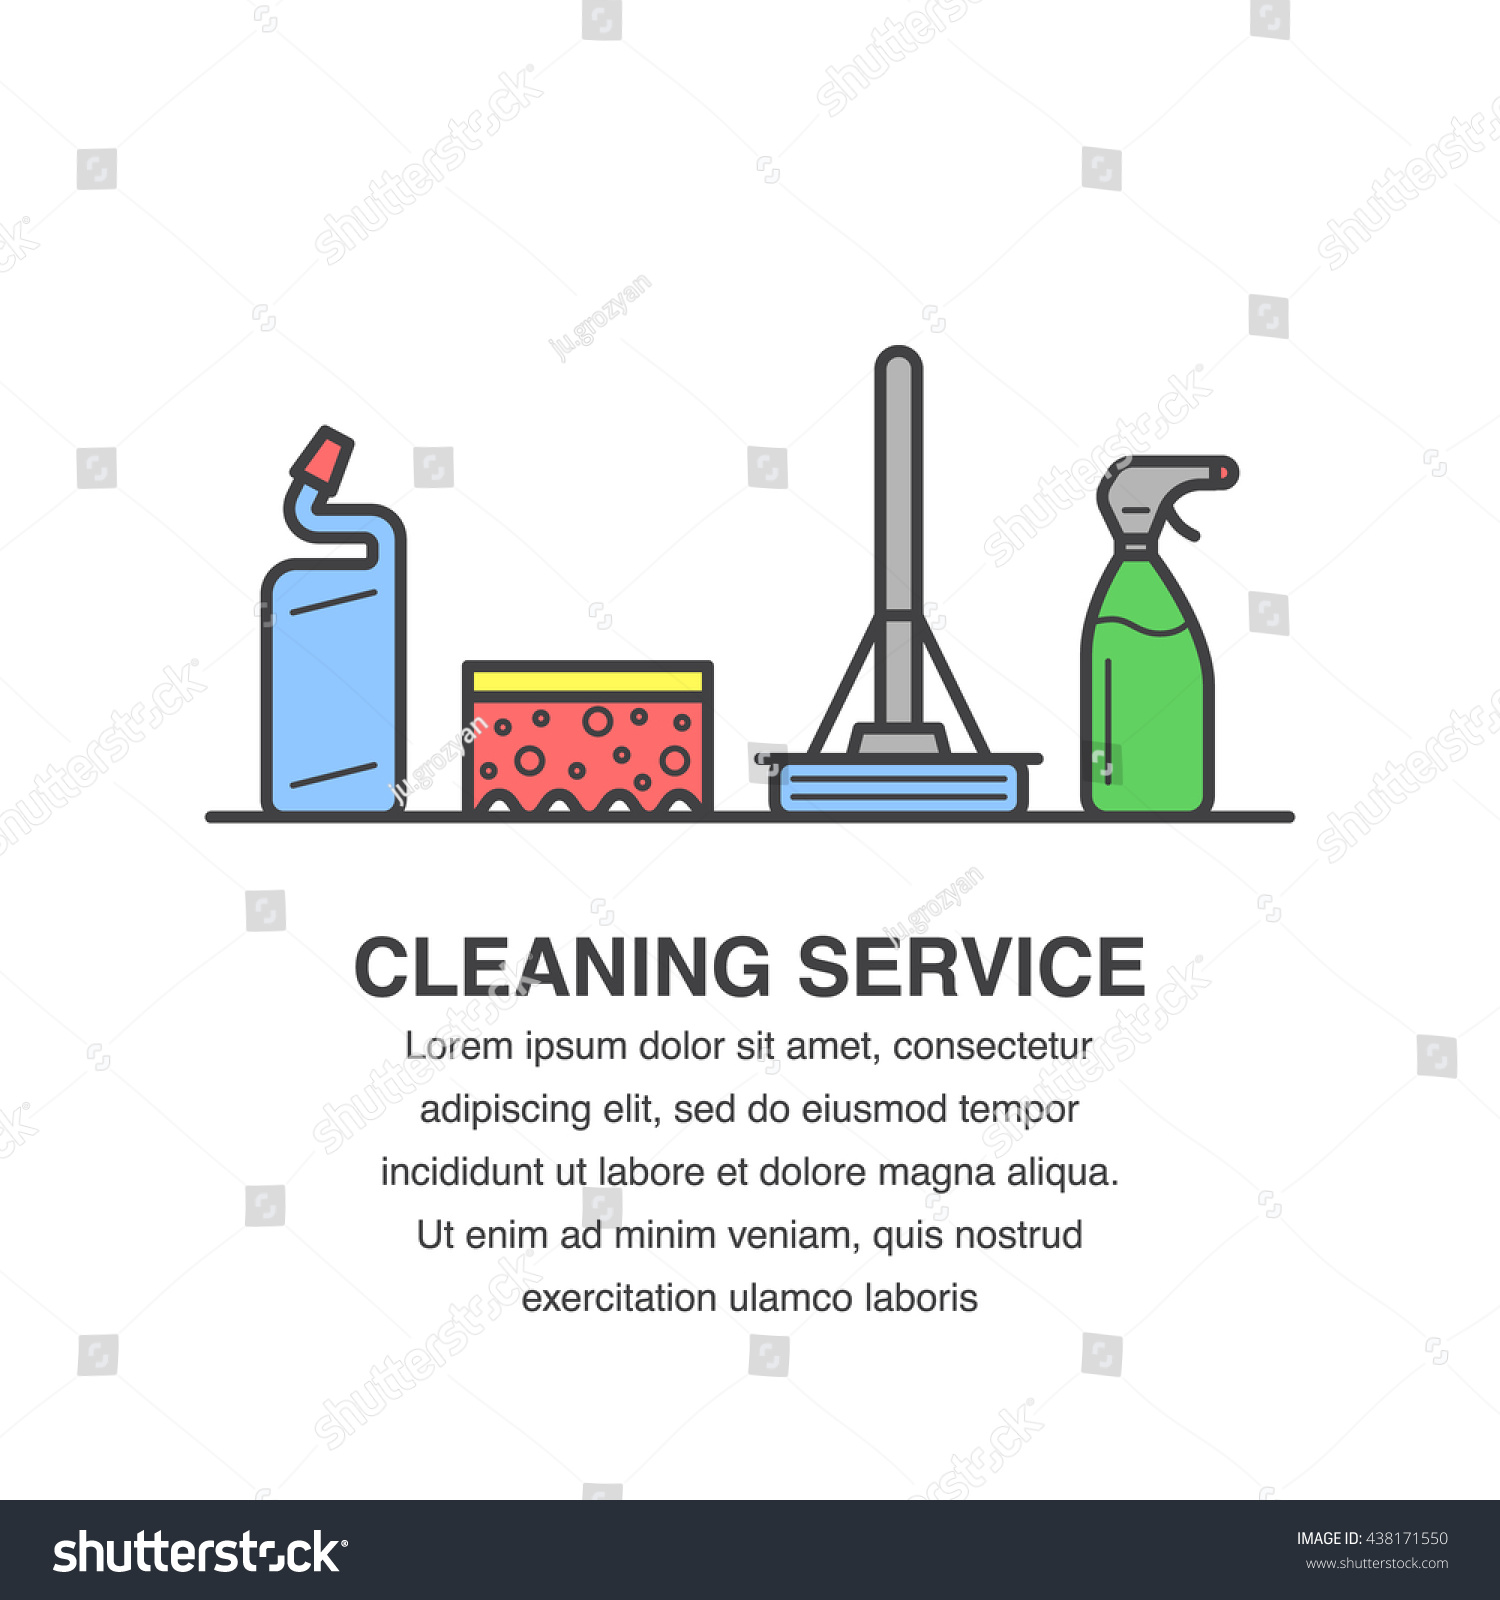 cleaning service banner design for advertisement mop sponge save to a lightbox